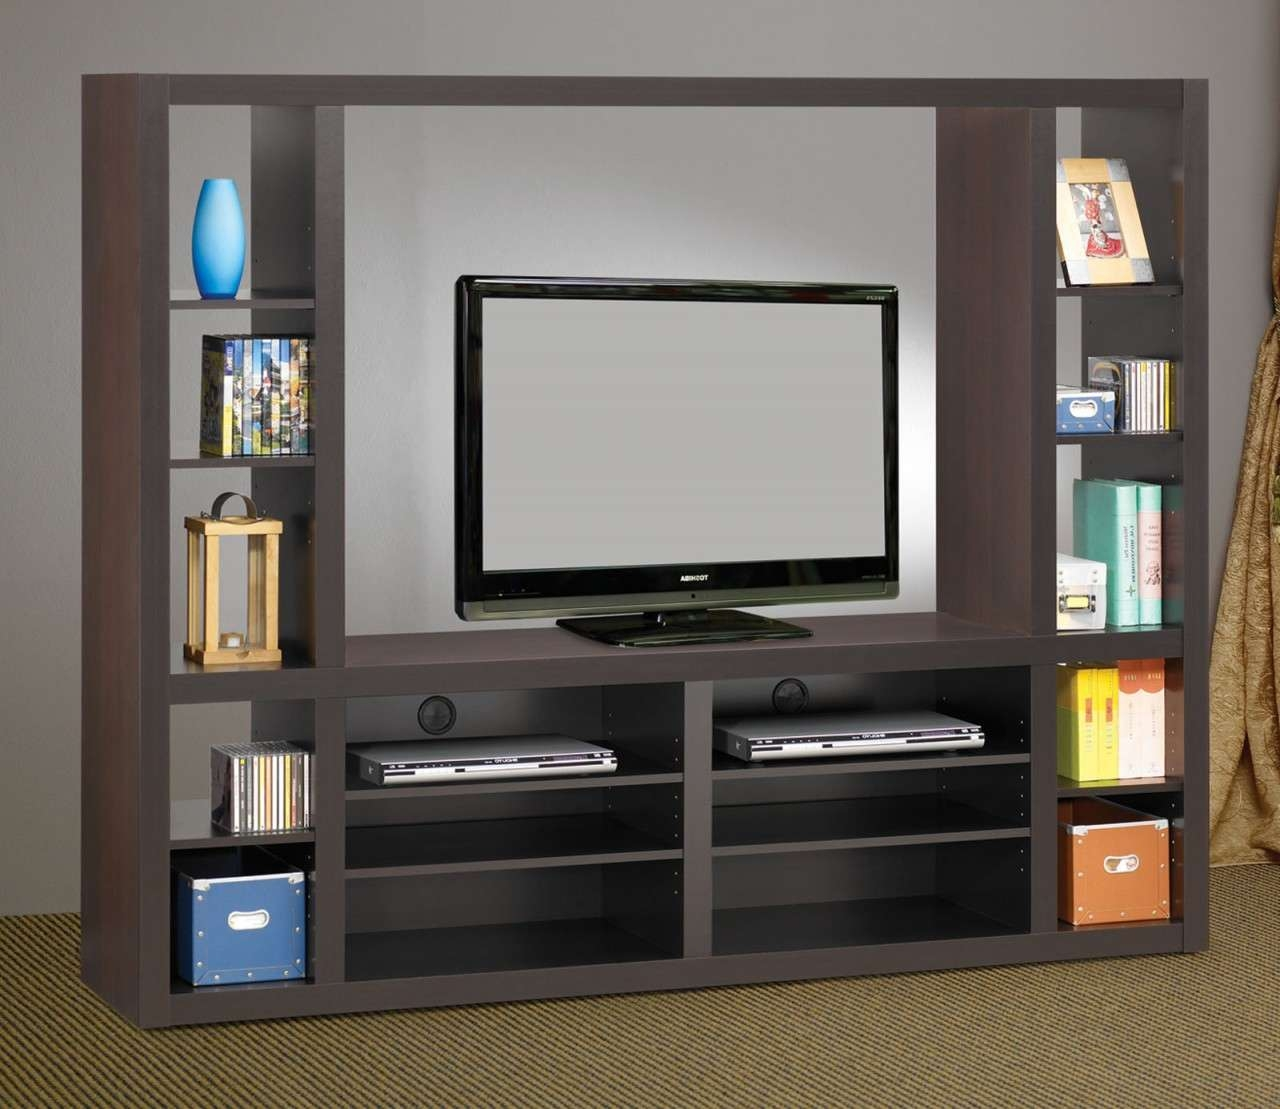 Marvellous Flat As Wells As Flat Screen As Wells As Oak Tv Stand For Contemporary Tv Cabinets For Flat Screens (View 14 of 20)